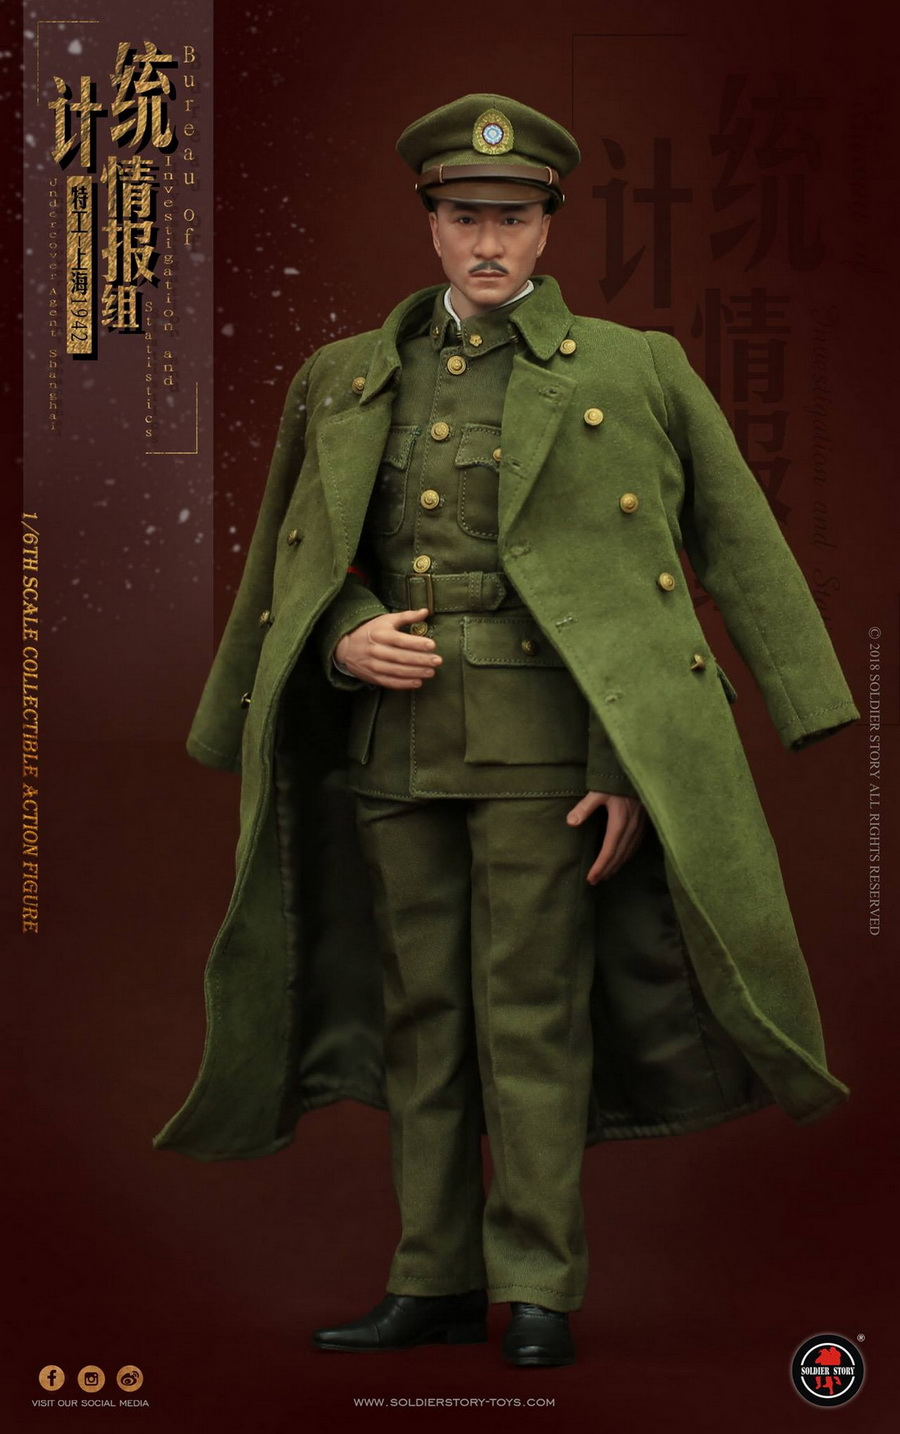 SoldierStory - NEW PRODUCT: SoldierStory new product: 1/6 World War II statistical intelligence group underground agent Fu Jingian - Shanghai 1942 (SS113#) 885